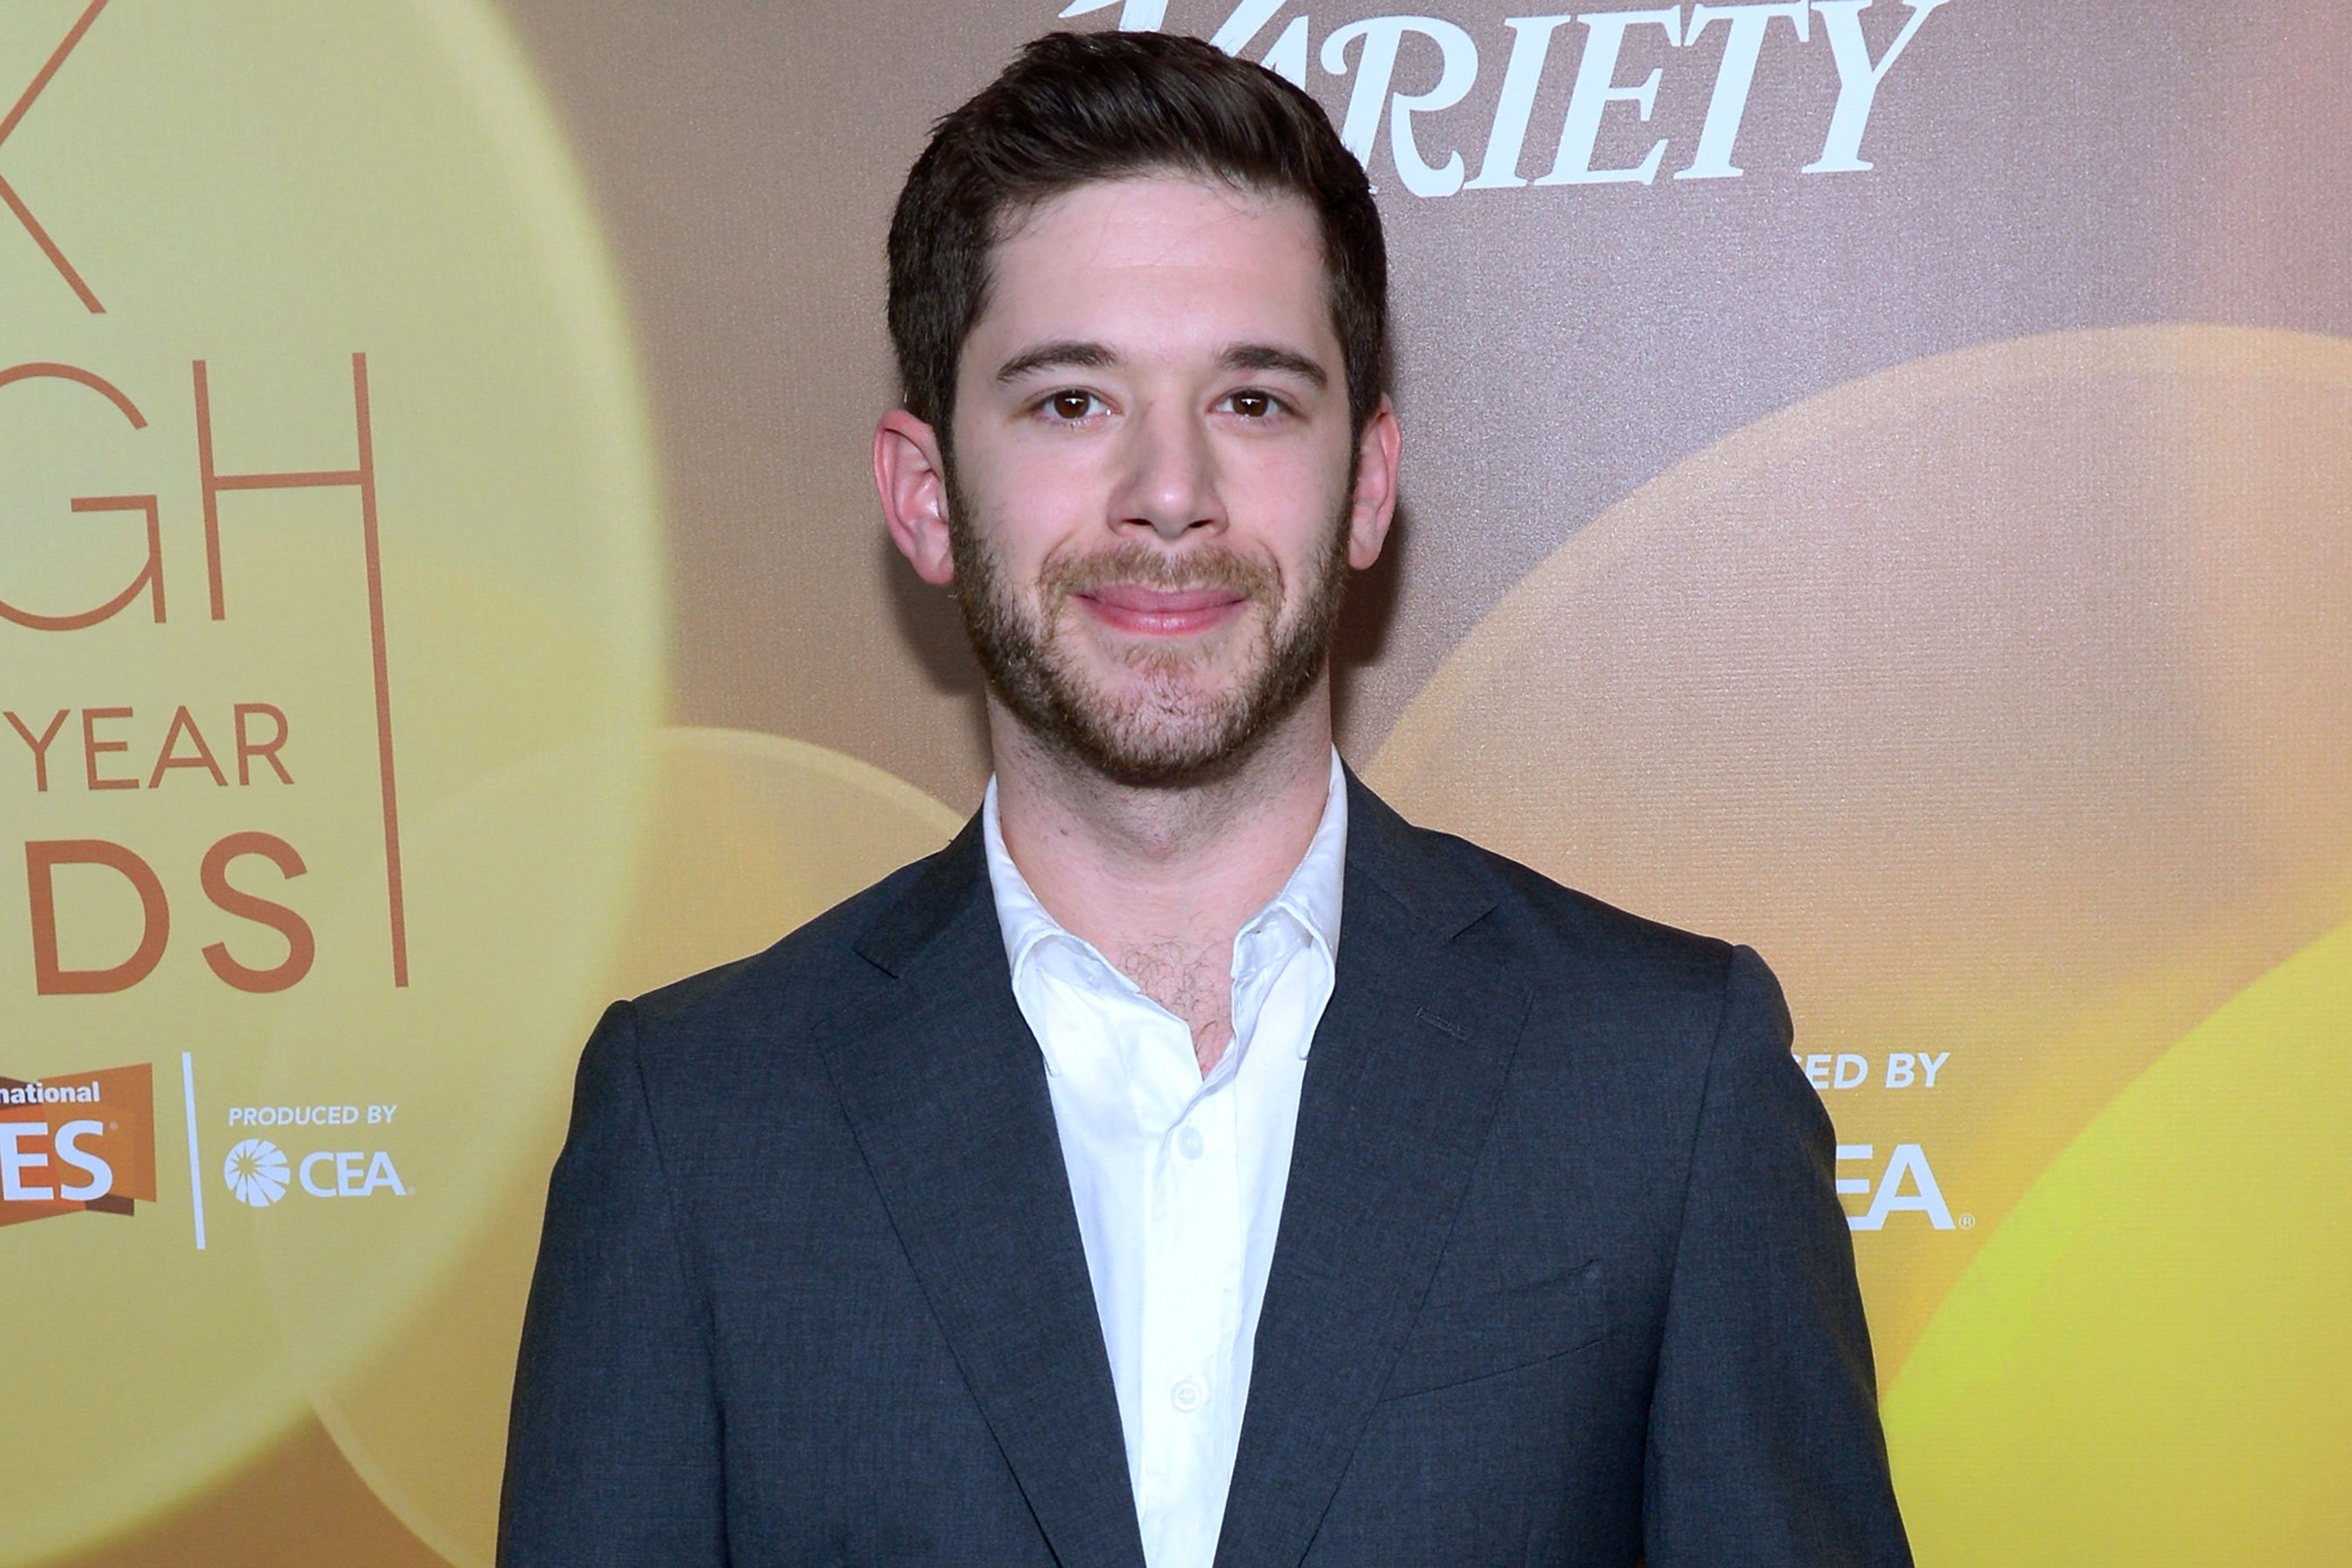 Vine and HQ Trivia co-founder Colin Kroll, 35, dies of suspected overdose